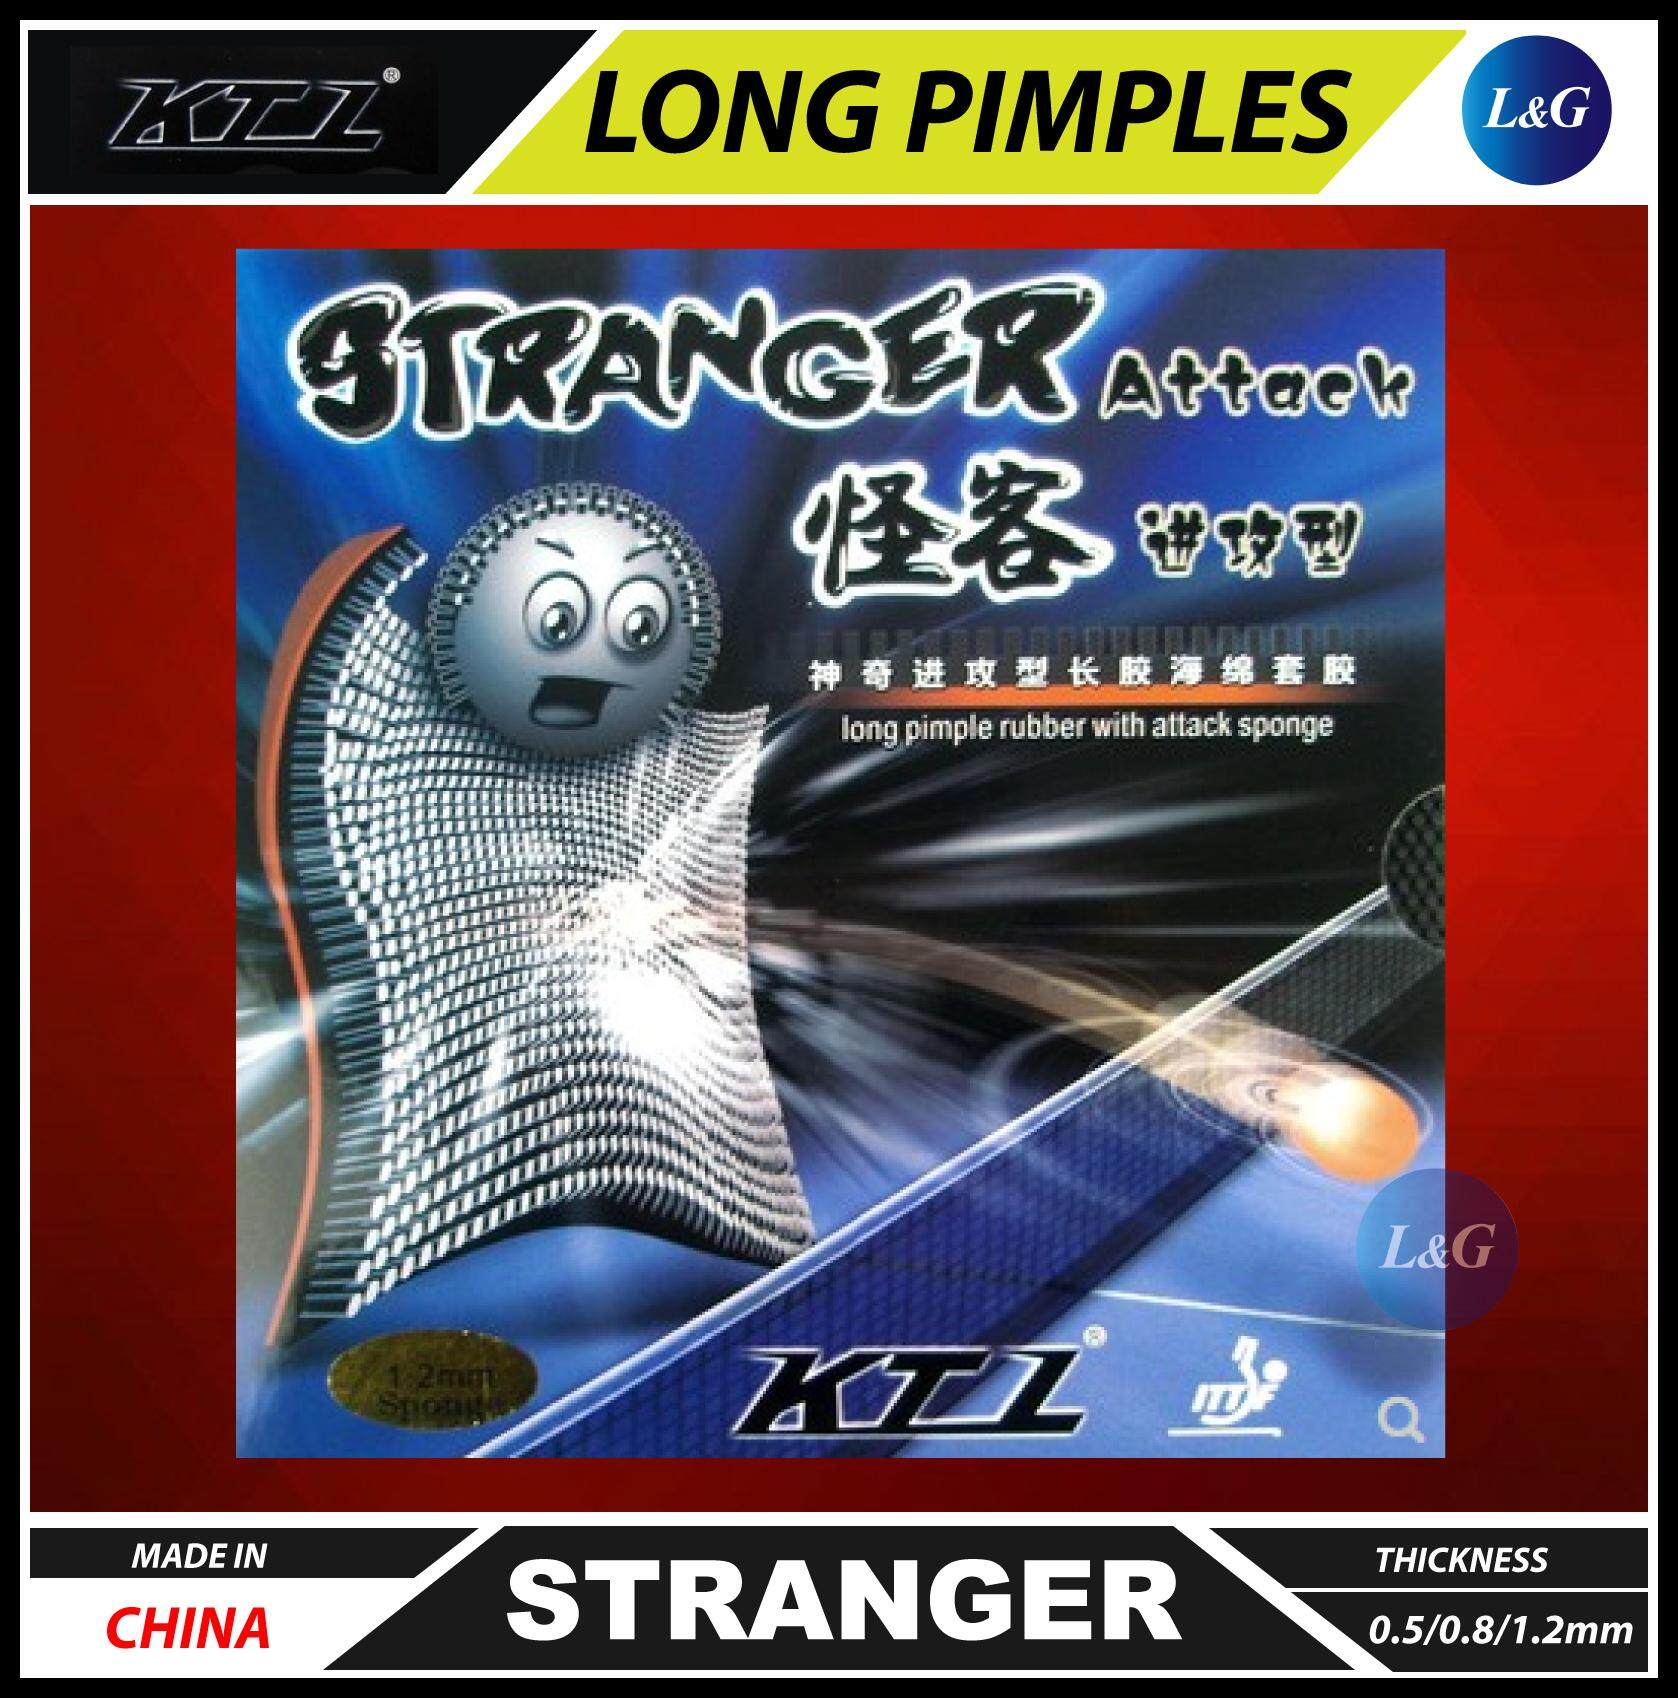 KTL Stranger Long Pimples Table Tennis Ping Pong Rubber 0.5/0.8/1.2mm Made In China ITTF Approved